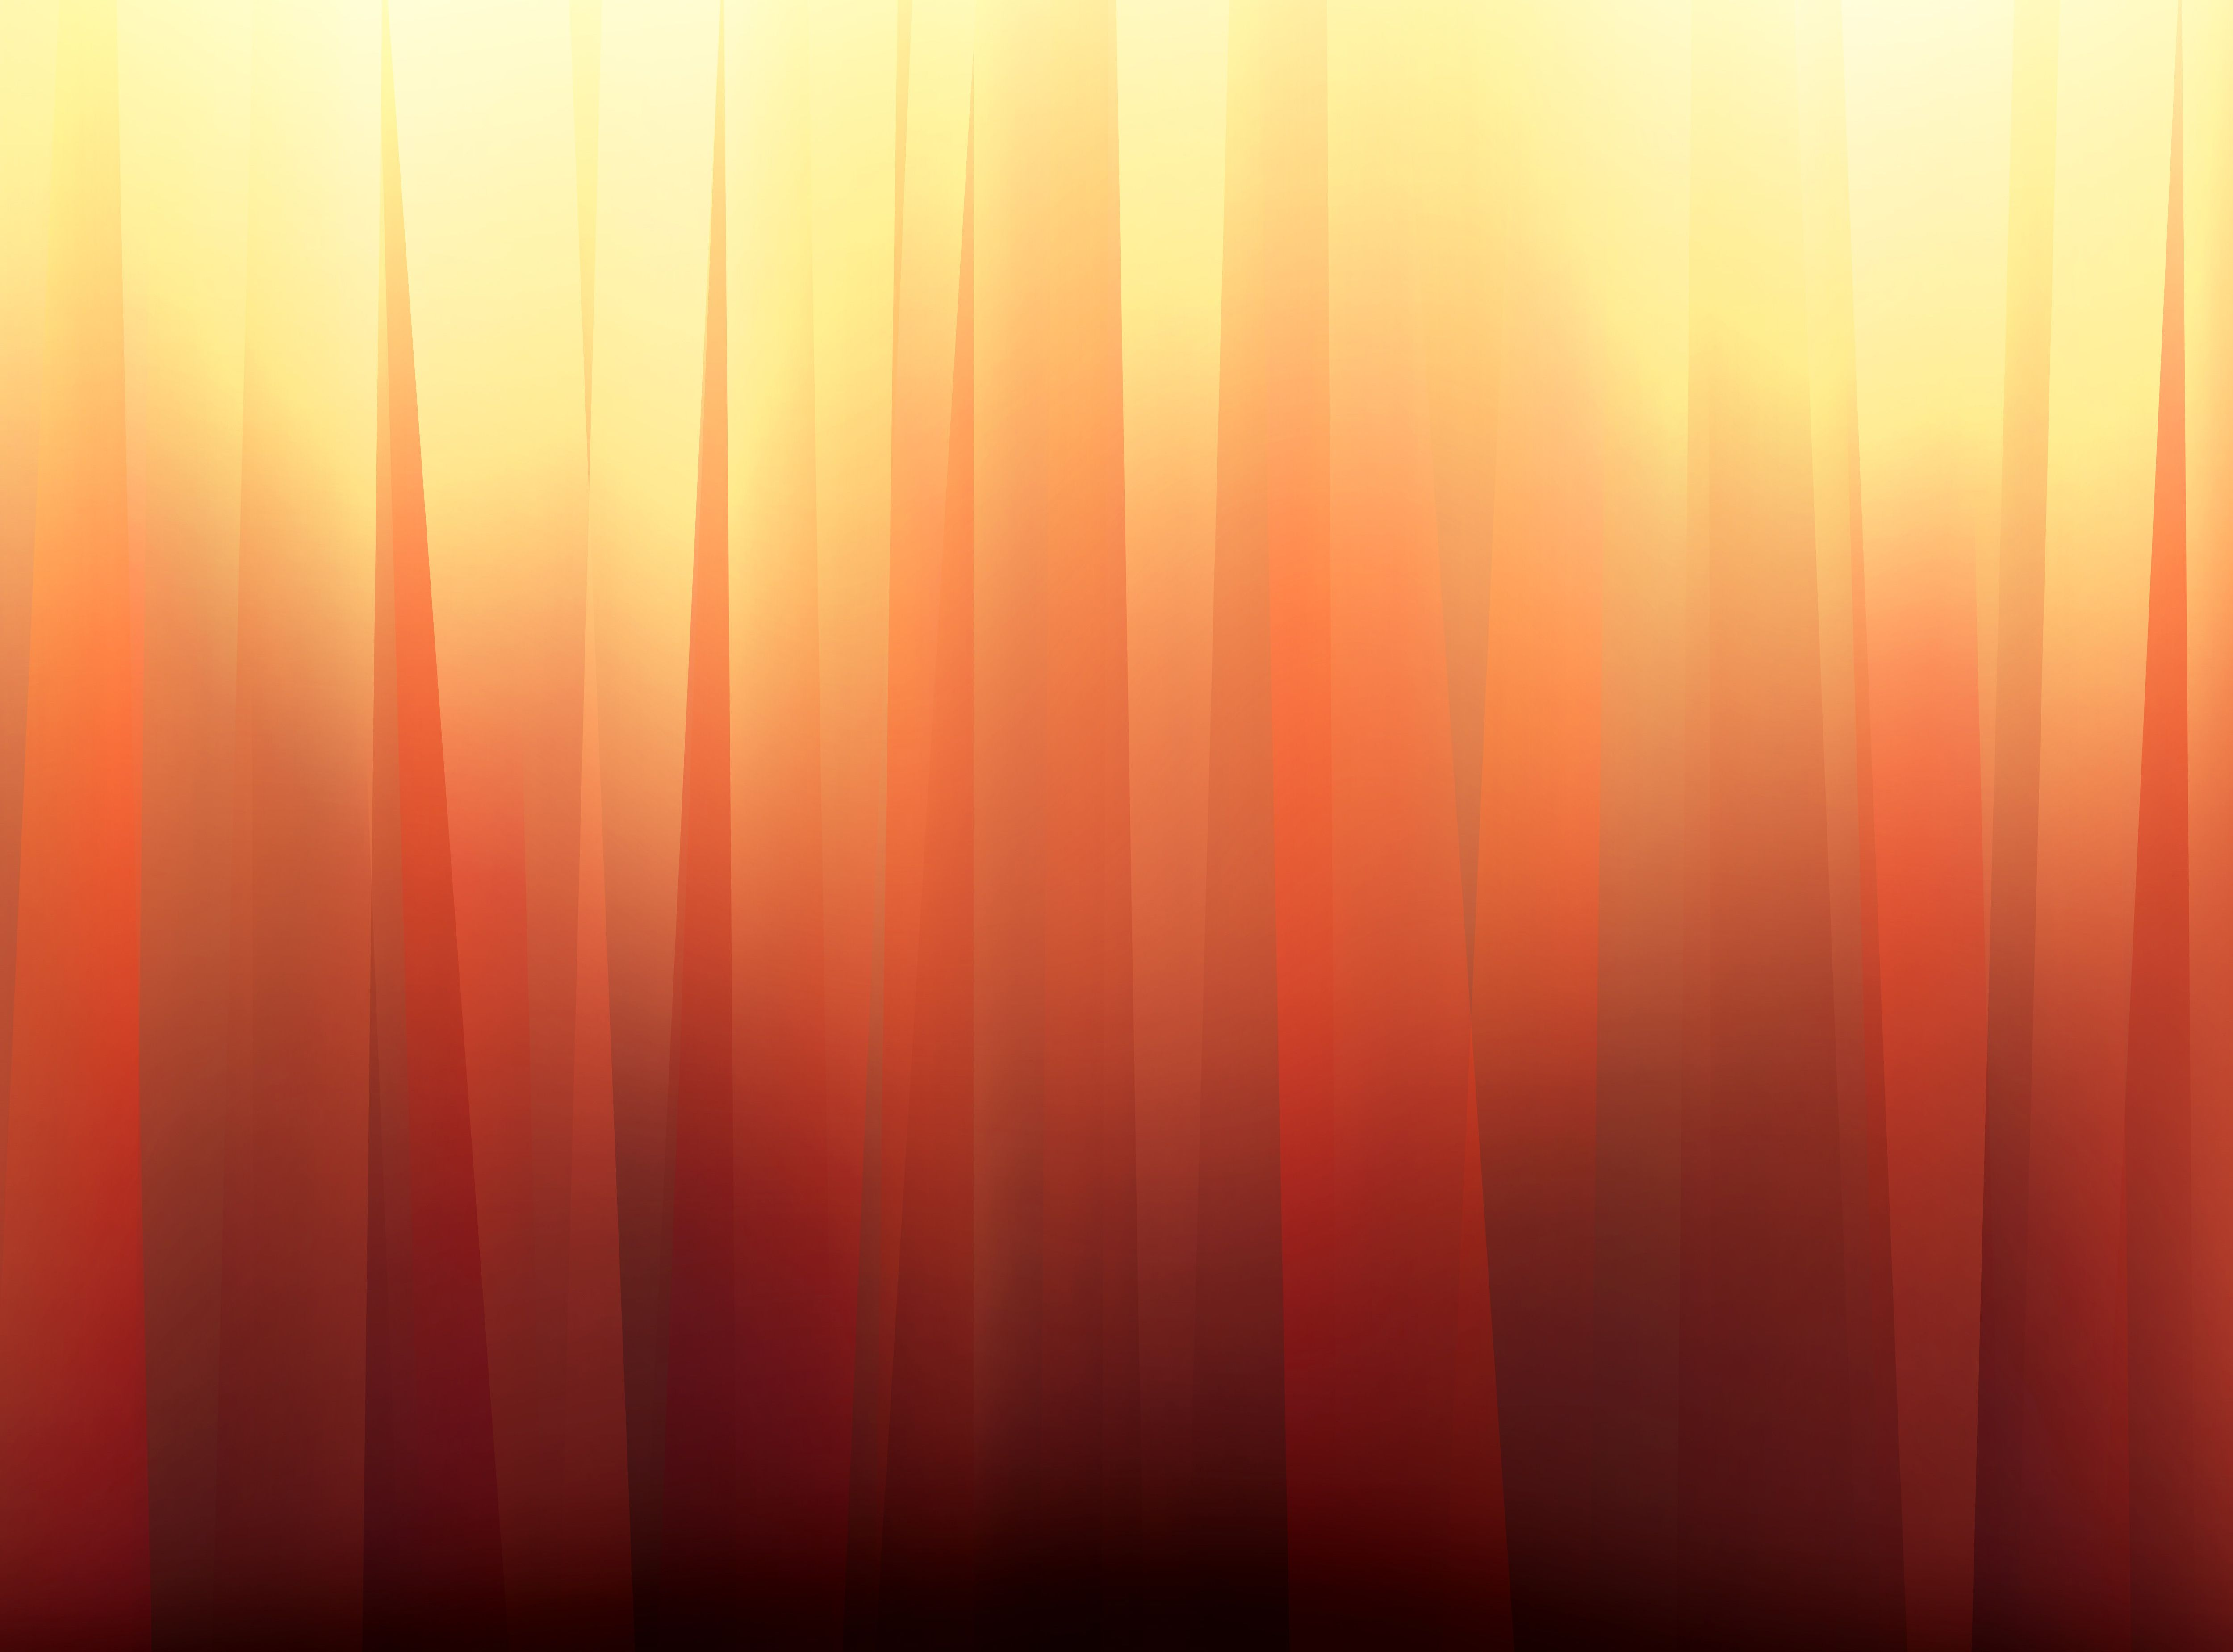 Background image o linear gradient - Hot Gradient Nice Linear Elements Looking For Book Cover Background Gradients For Divya Victor S